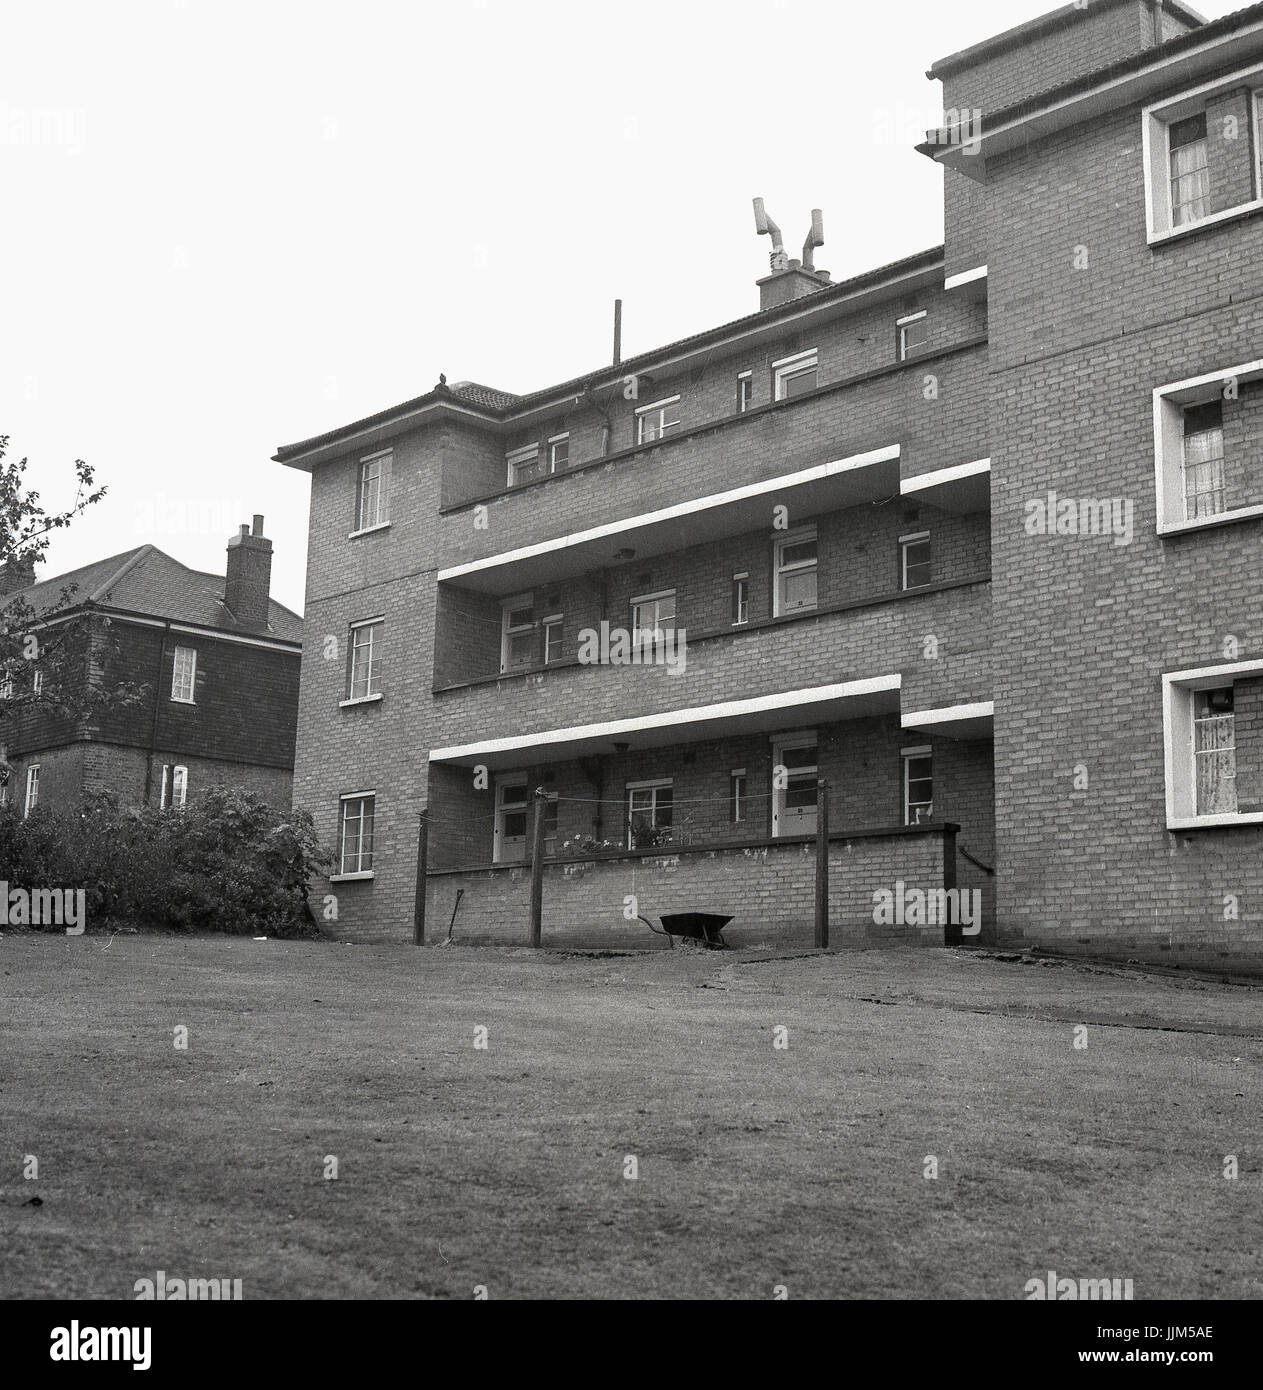 1972, exterior view from the back of a low-rise three story block of council flats of brick costruction with chimneys - Stock Image